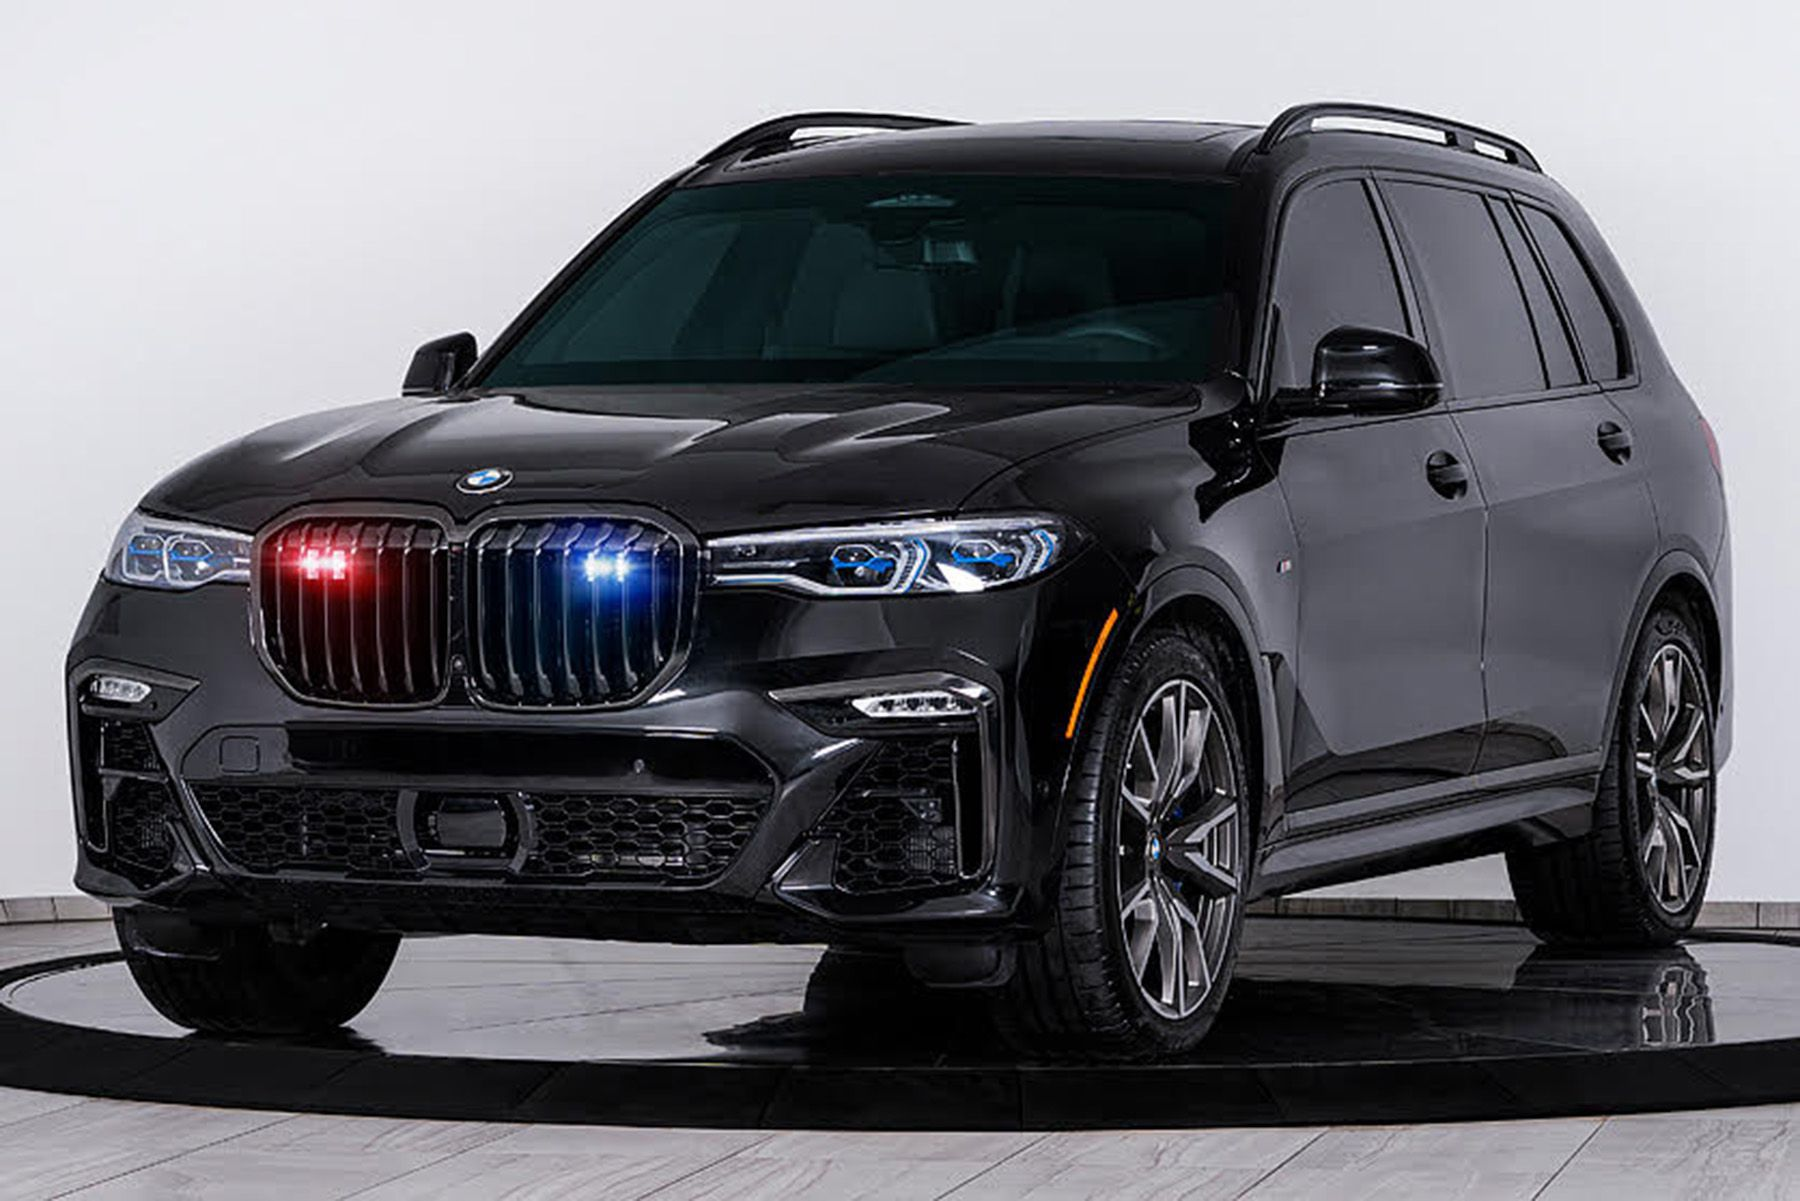 B.C. court orders seizure of leased BMW X7 to prevent its export from Canada